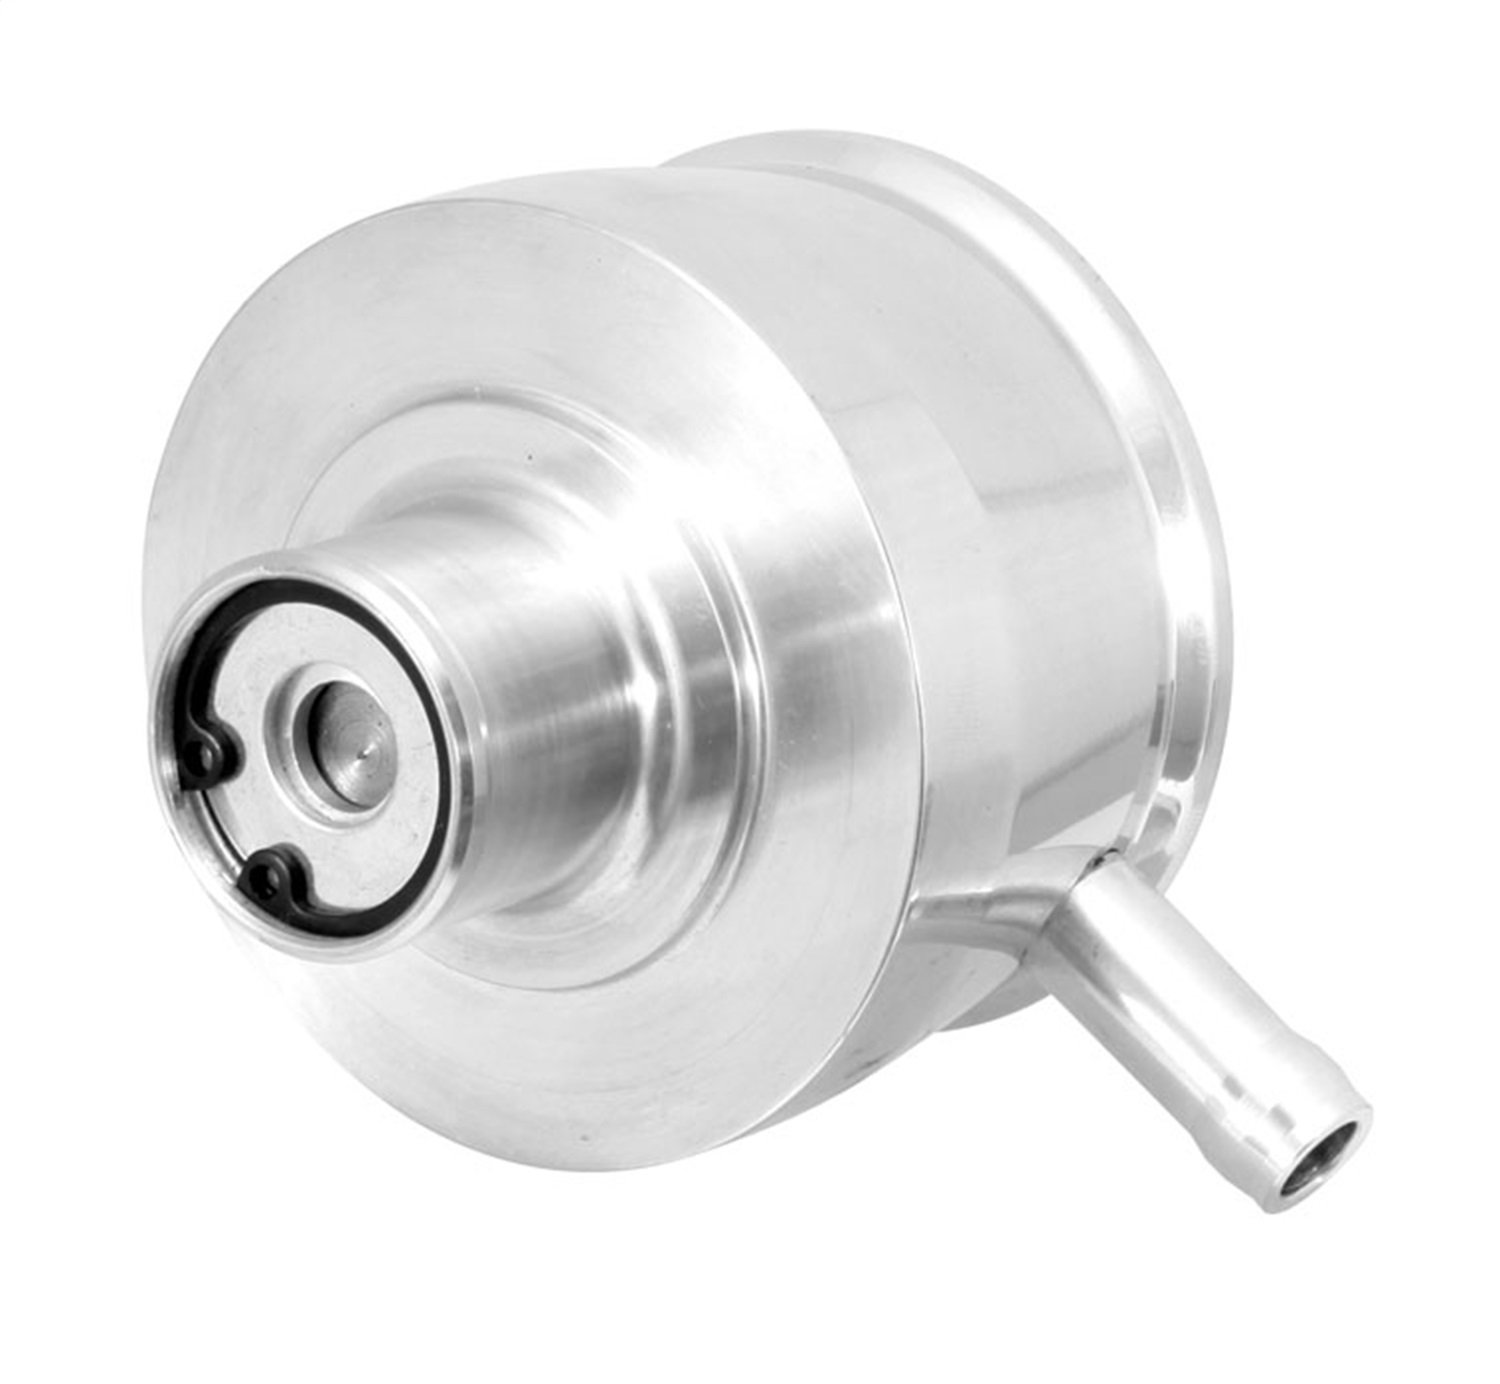 Spectre Performance 4921 1 Push-In Smooth Aluminum PCV//Breather